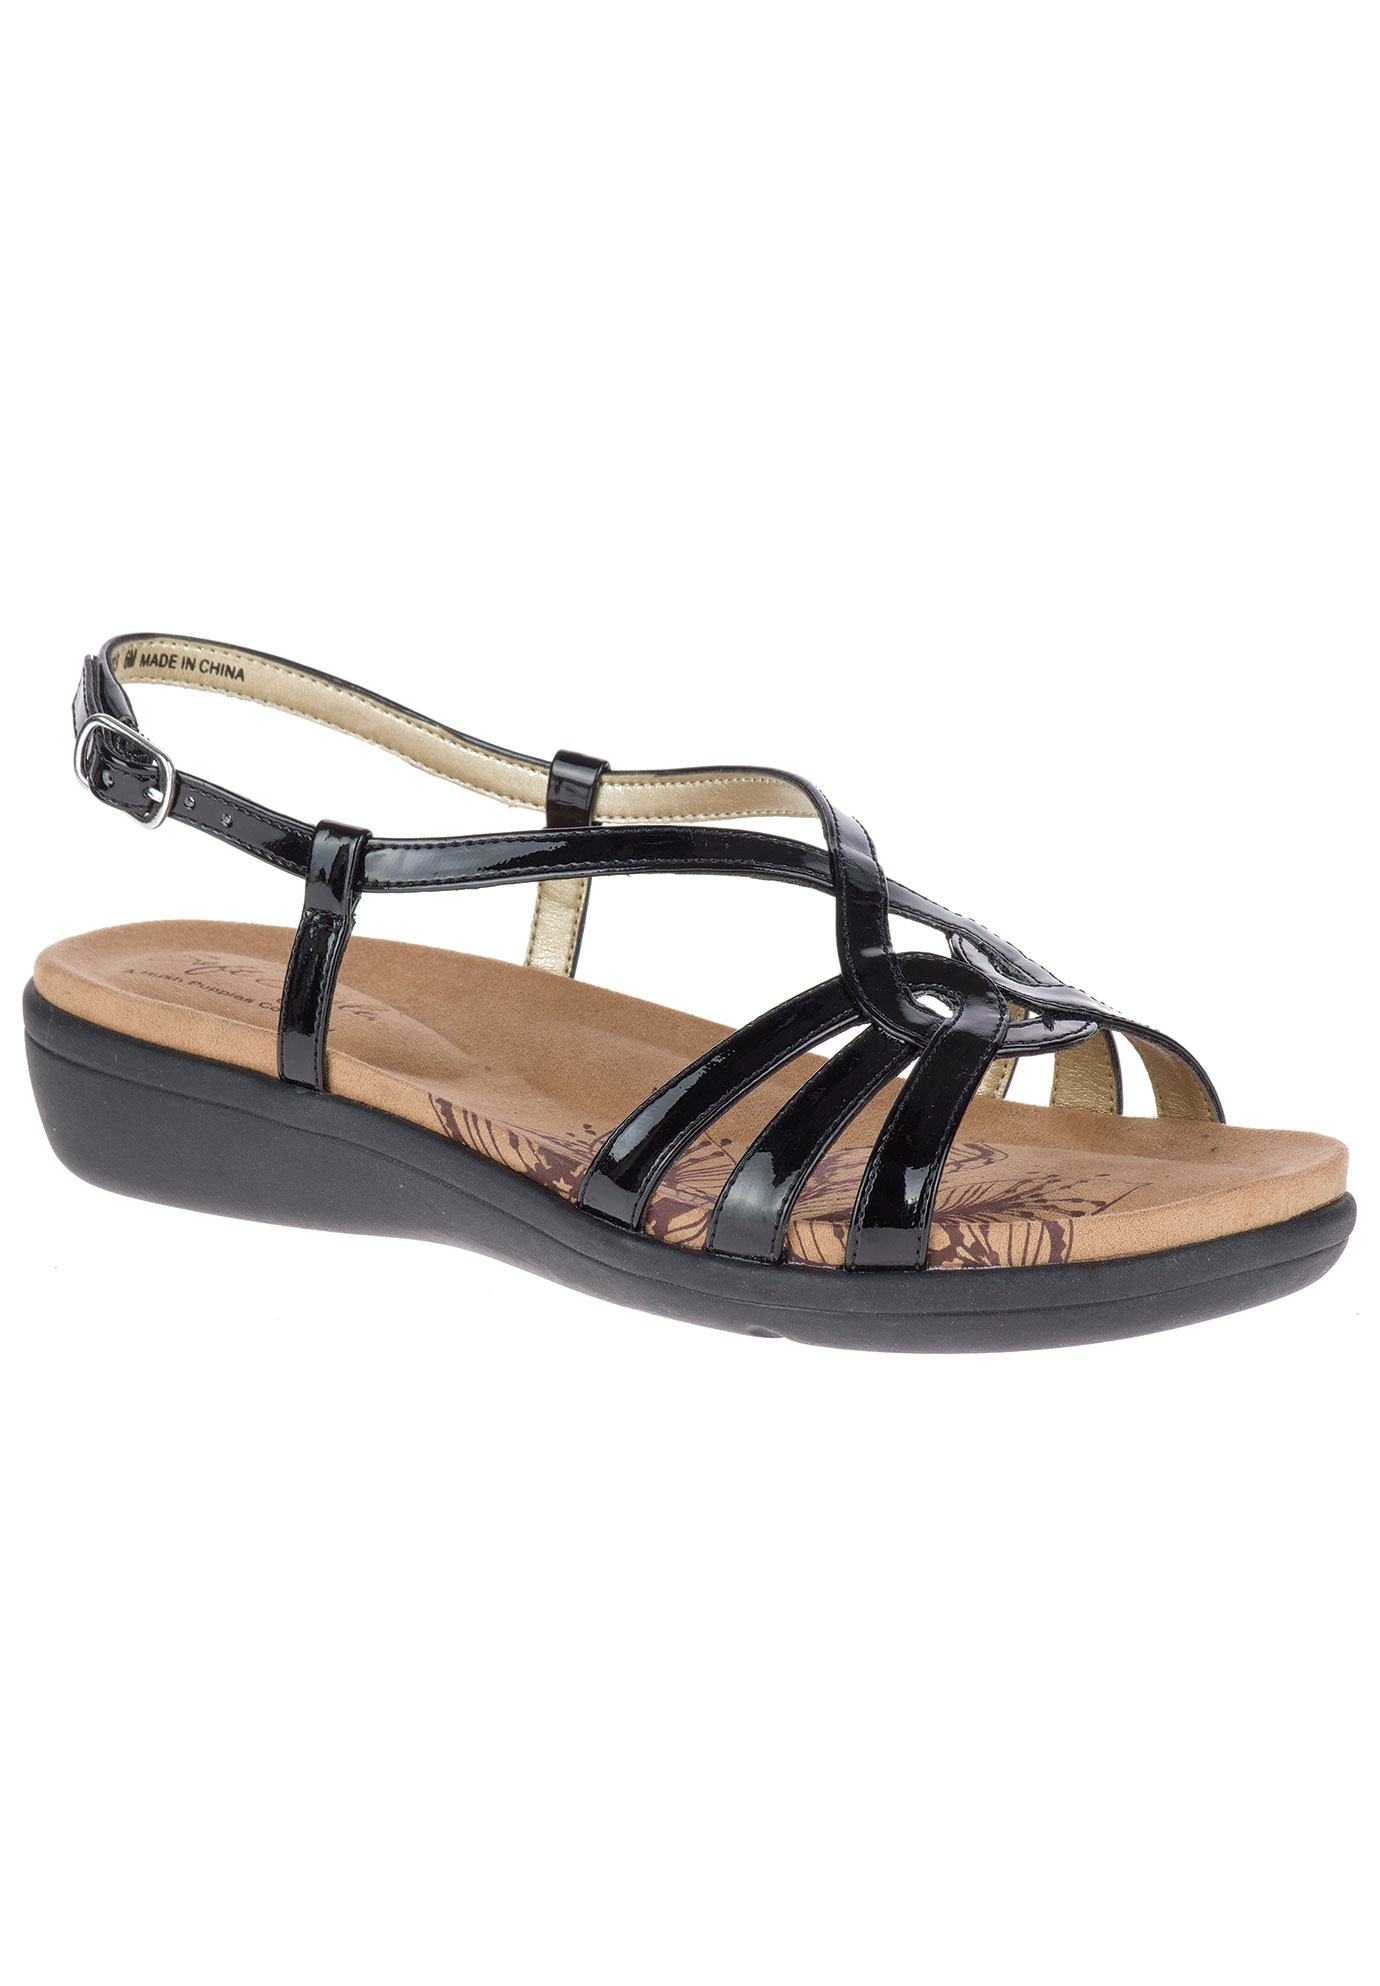 Patrese Sandals by Soft Style® outlet ebay 9Nl931D8ov